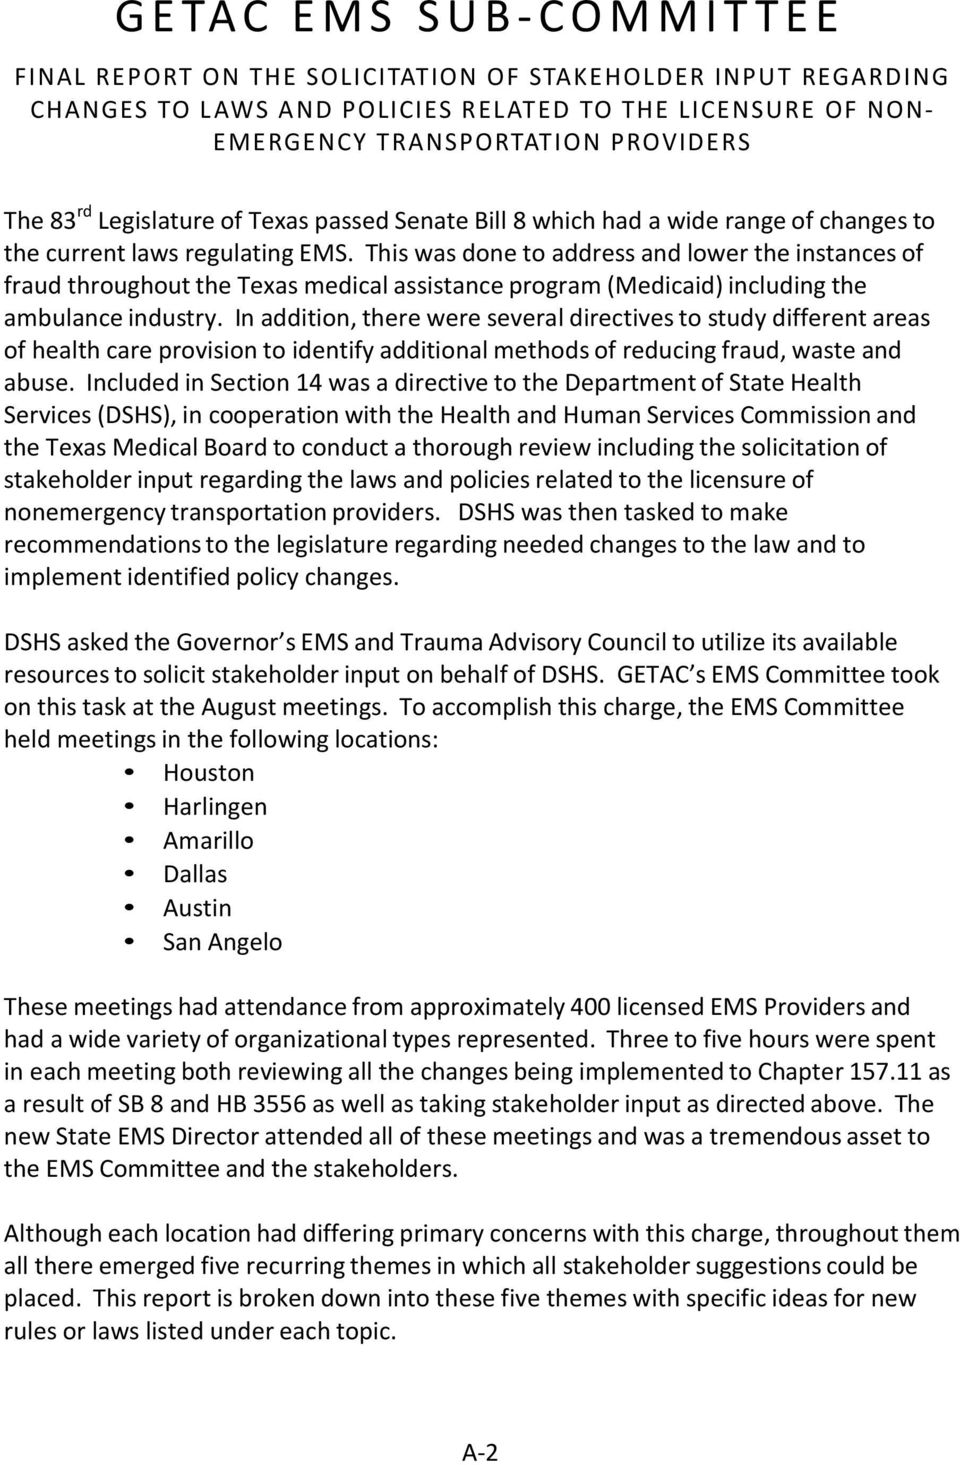 current laws regulating EMS. This was done to address and lower the instances of fraud throughout the Texas medical assistance program (Medicaid) including the ambulance industry.